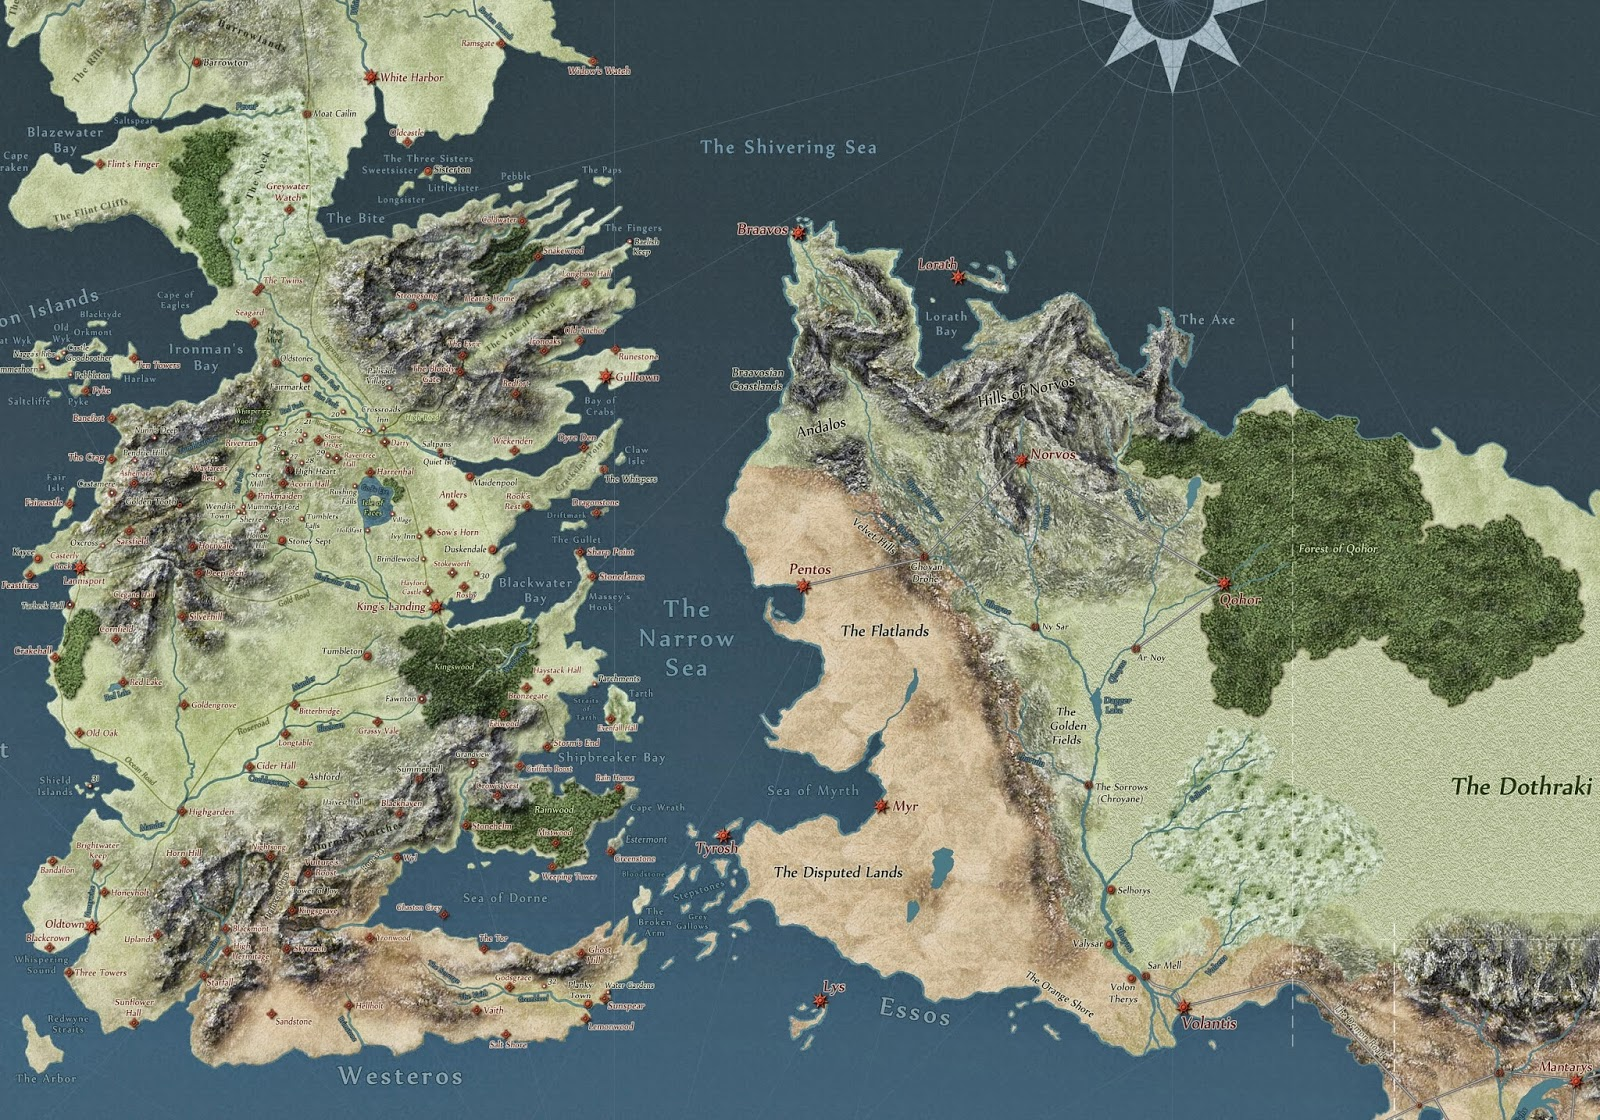 http://www.sermountaingoat.co.uk/map/versions/speculative_map.jpg